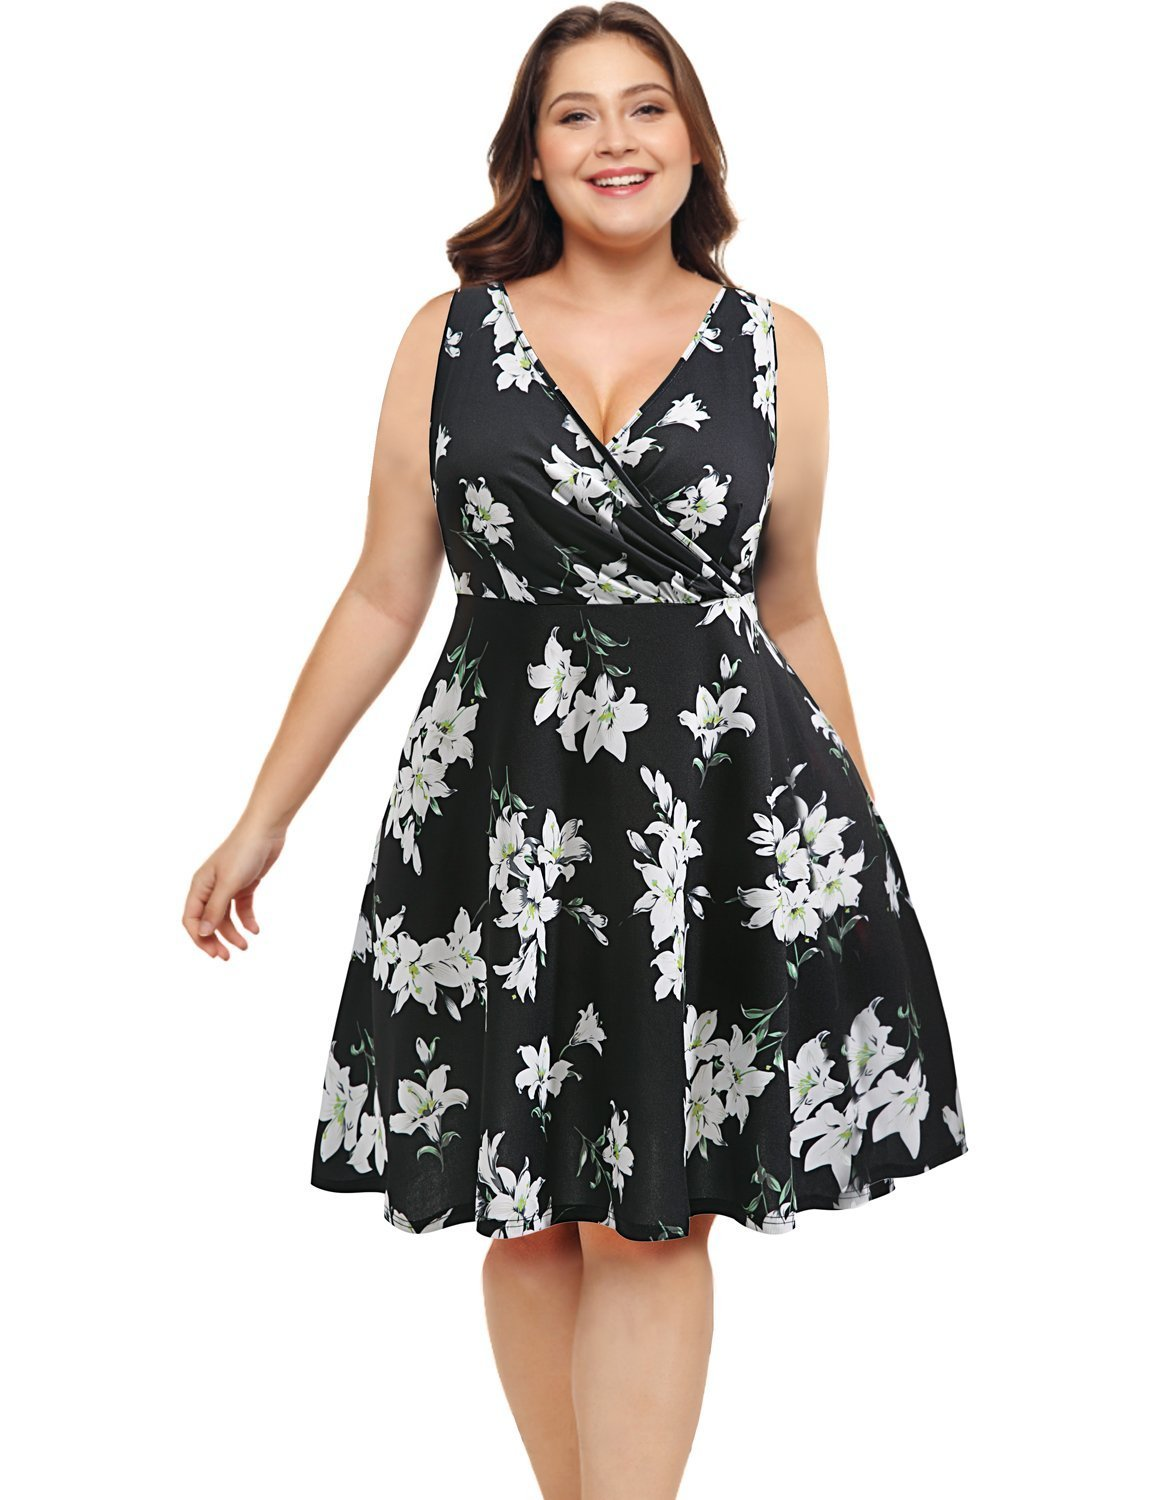 Pinup Fashion V Neck Sleeveless Summer Flare Floral Casual Plus Size Dress for Women Black XL (18/20 Plus)